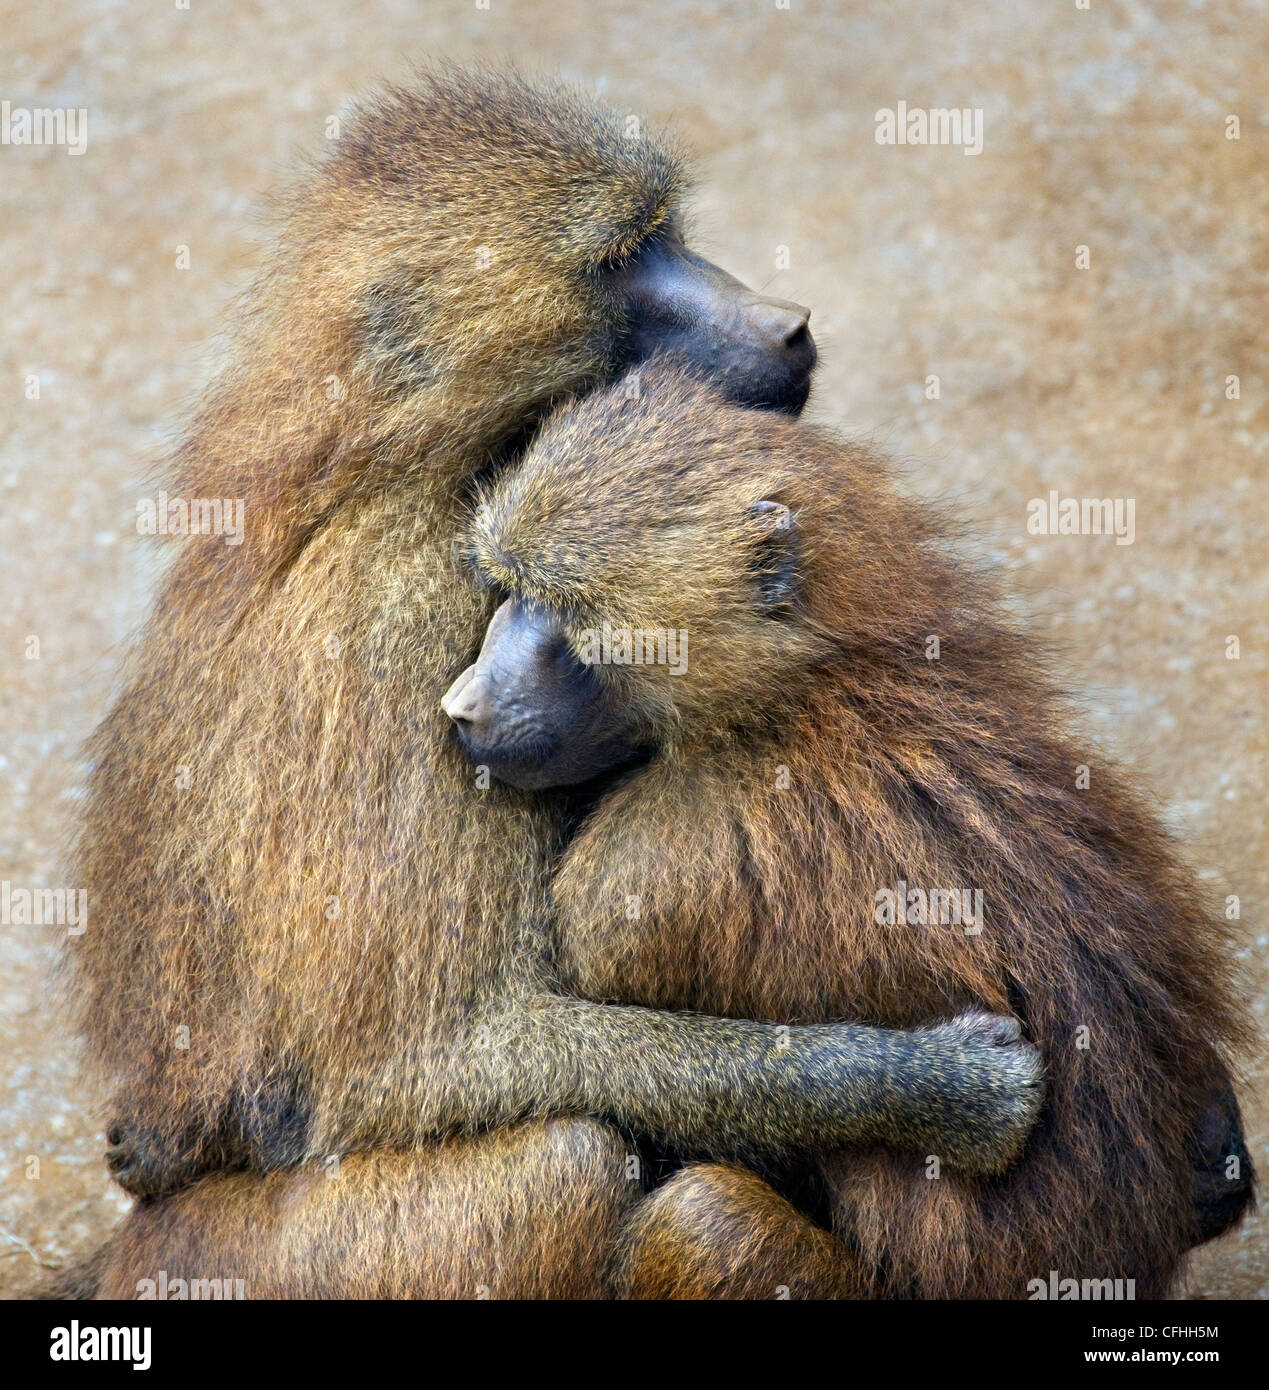 Guinea Baboon couple, Cabarceno, Spain Stock Foto